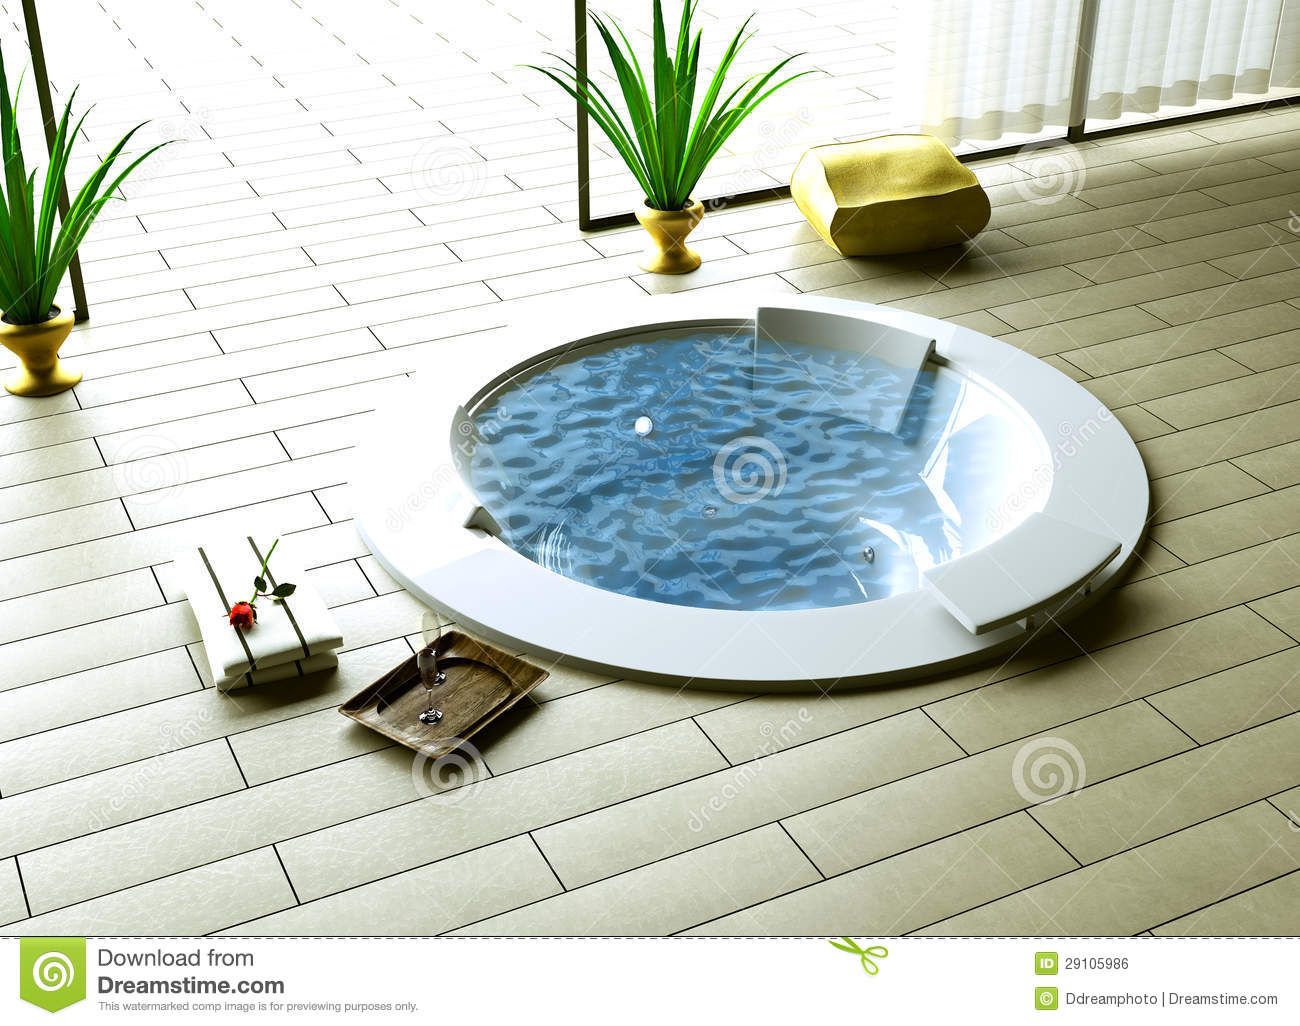 Free Bathroom Floor Plans Whirlpool Inside Outside Stock Illustration Image Of